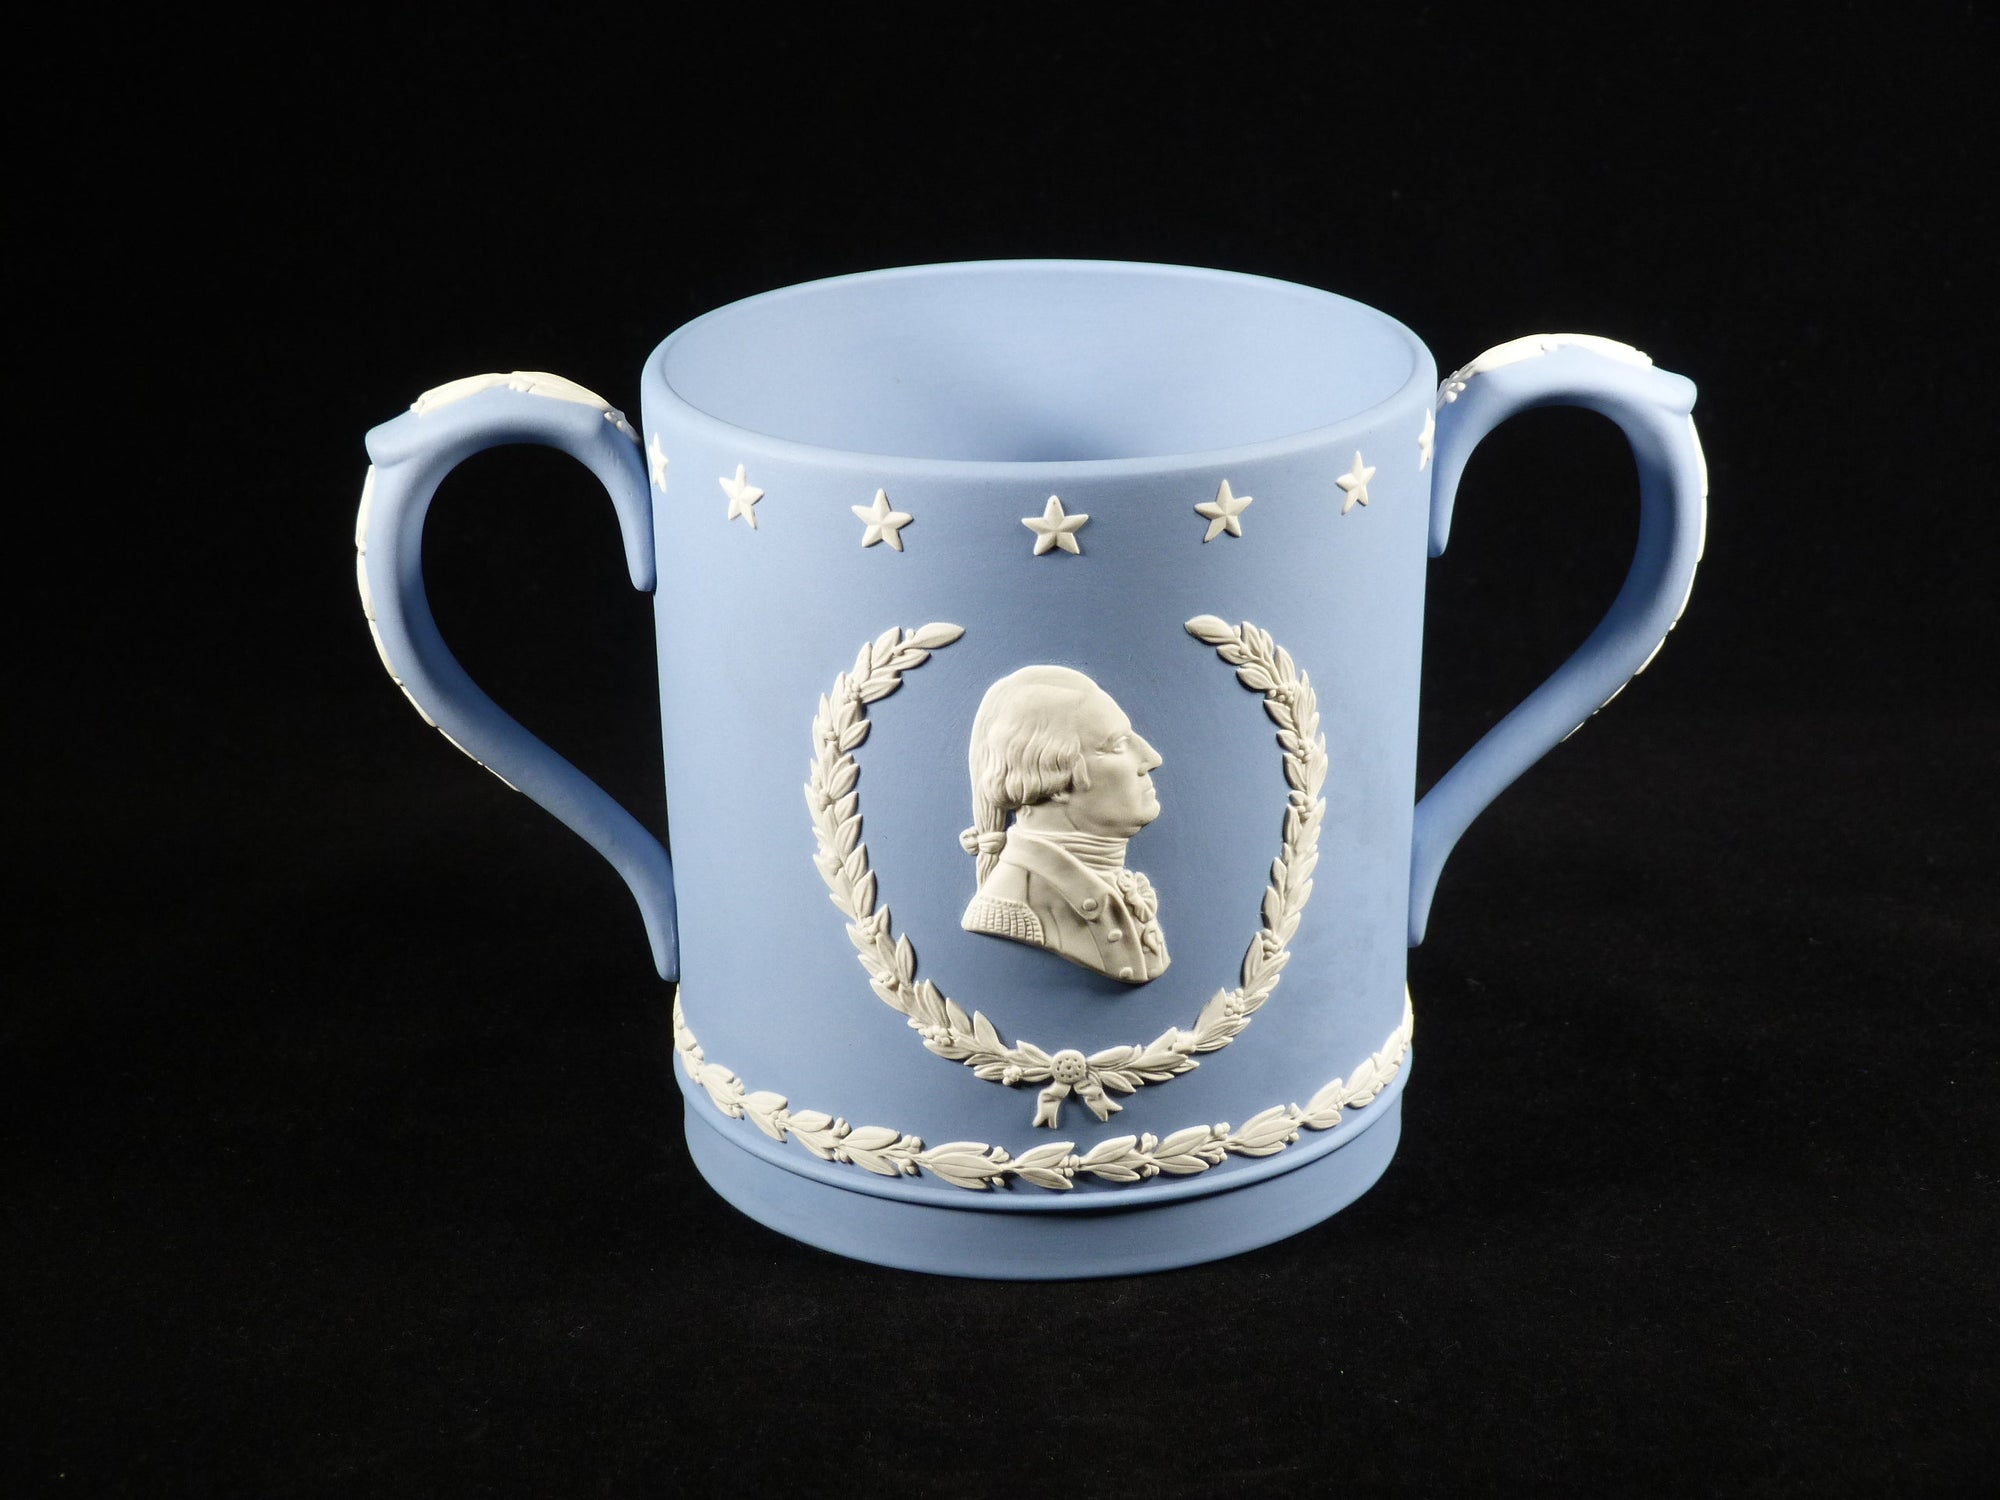 Wedgwood Jasperware Loving Cup, Collectors Society, George Washington